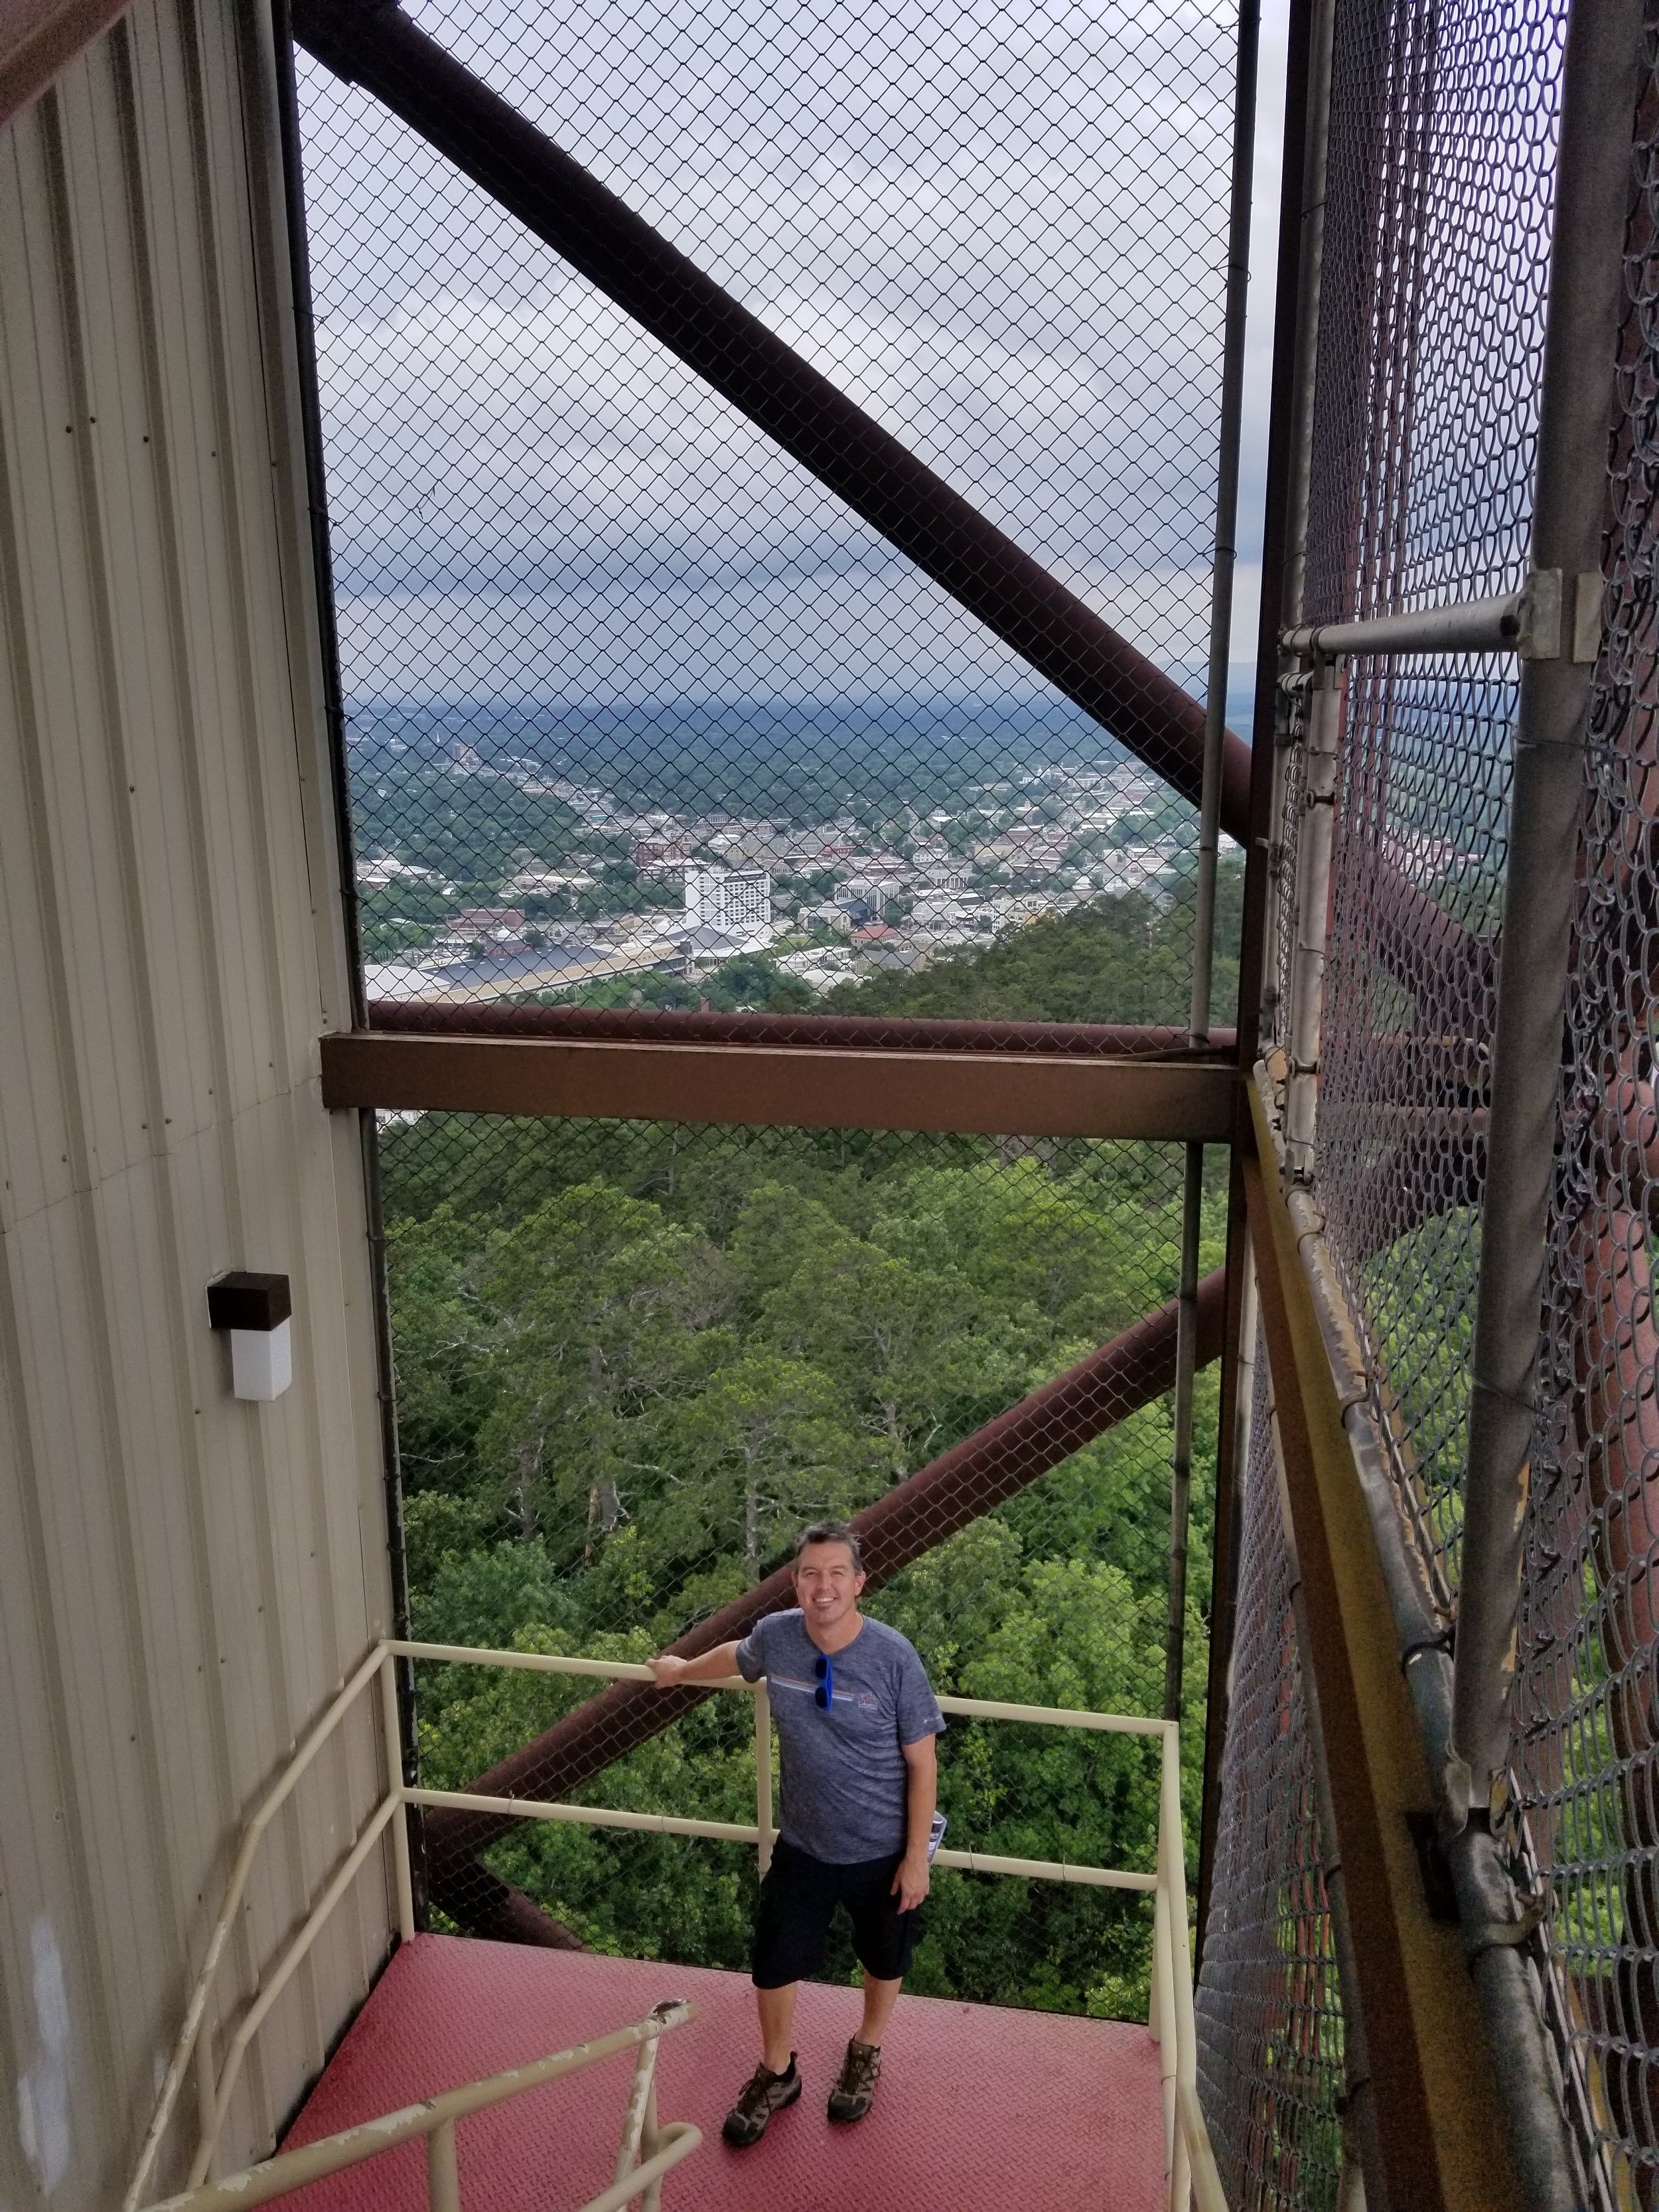 We took the elevator up Mountain Tower and decided to take the stairs down. Hot Springs in the background